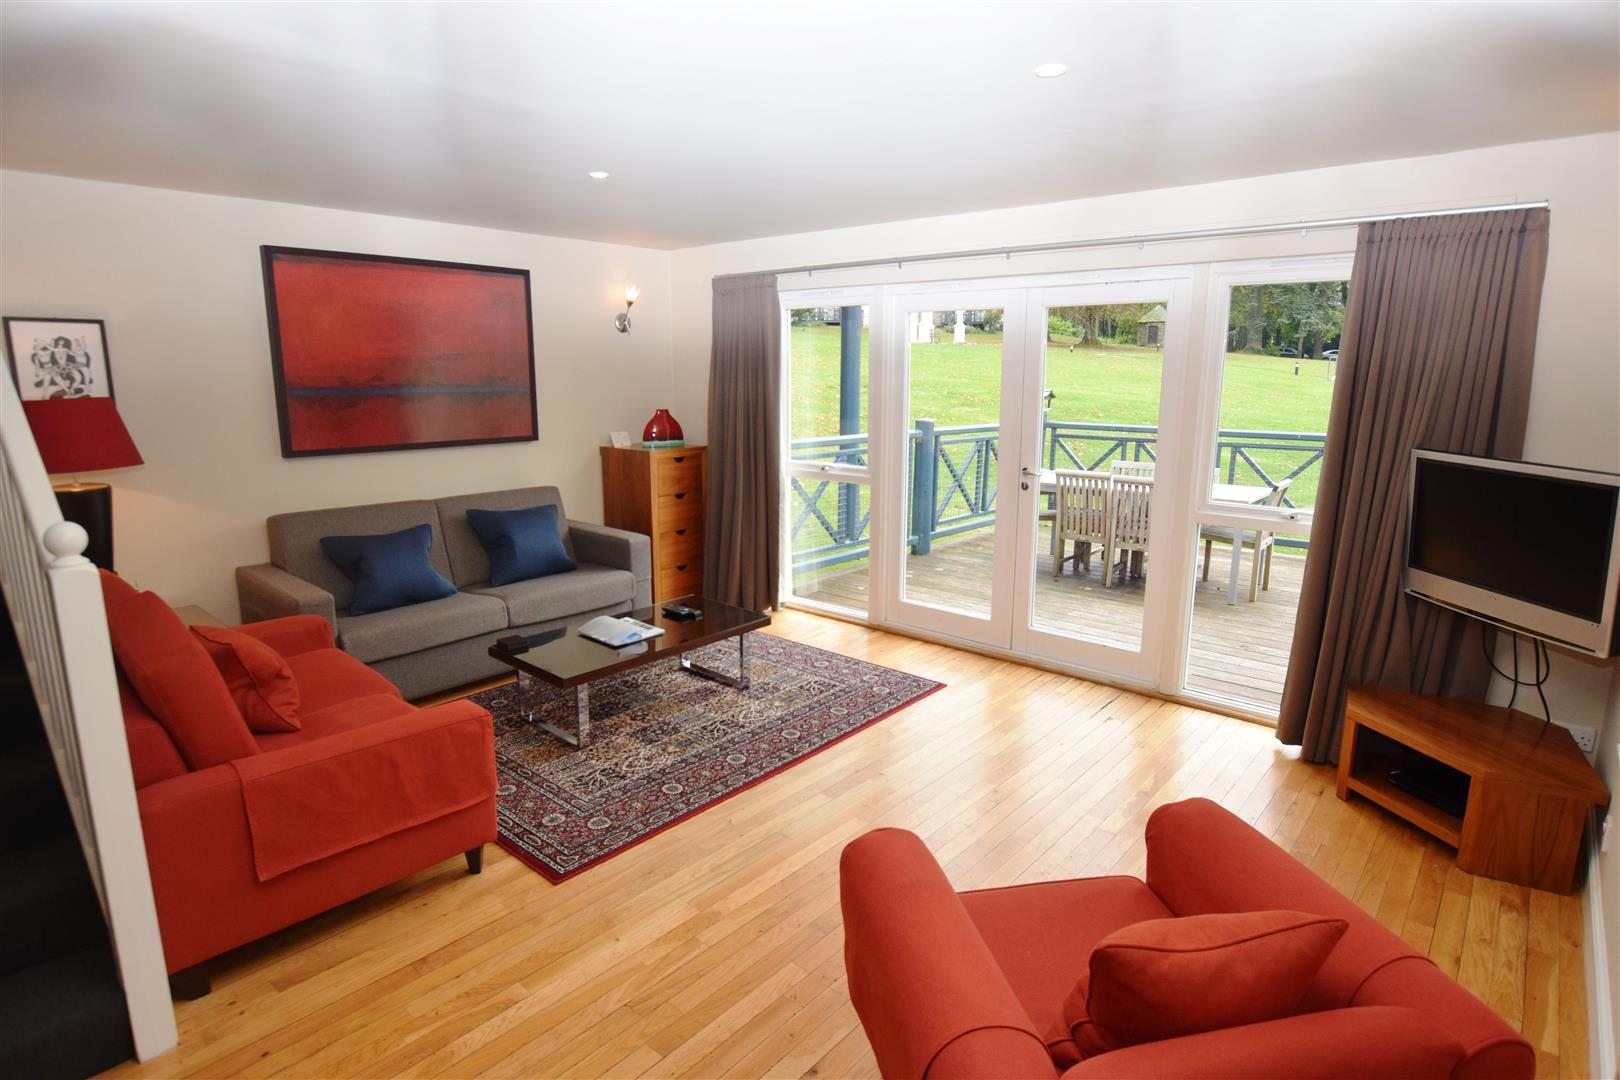 701, Garden Lodges, Duchally Country Estate, Auchterarder, Perthshire, PH3 1PN, UK